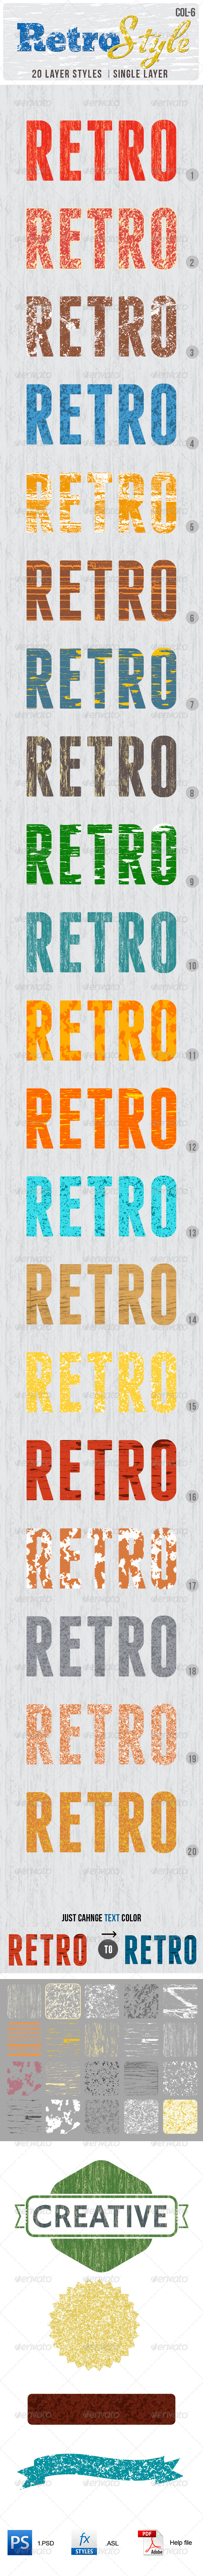 GraphicRiver Retro Layer Styles 5123870